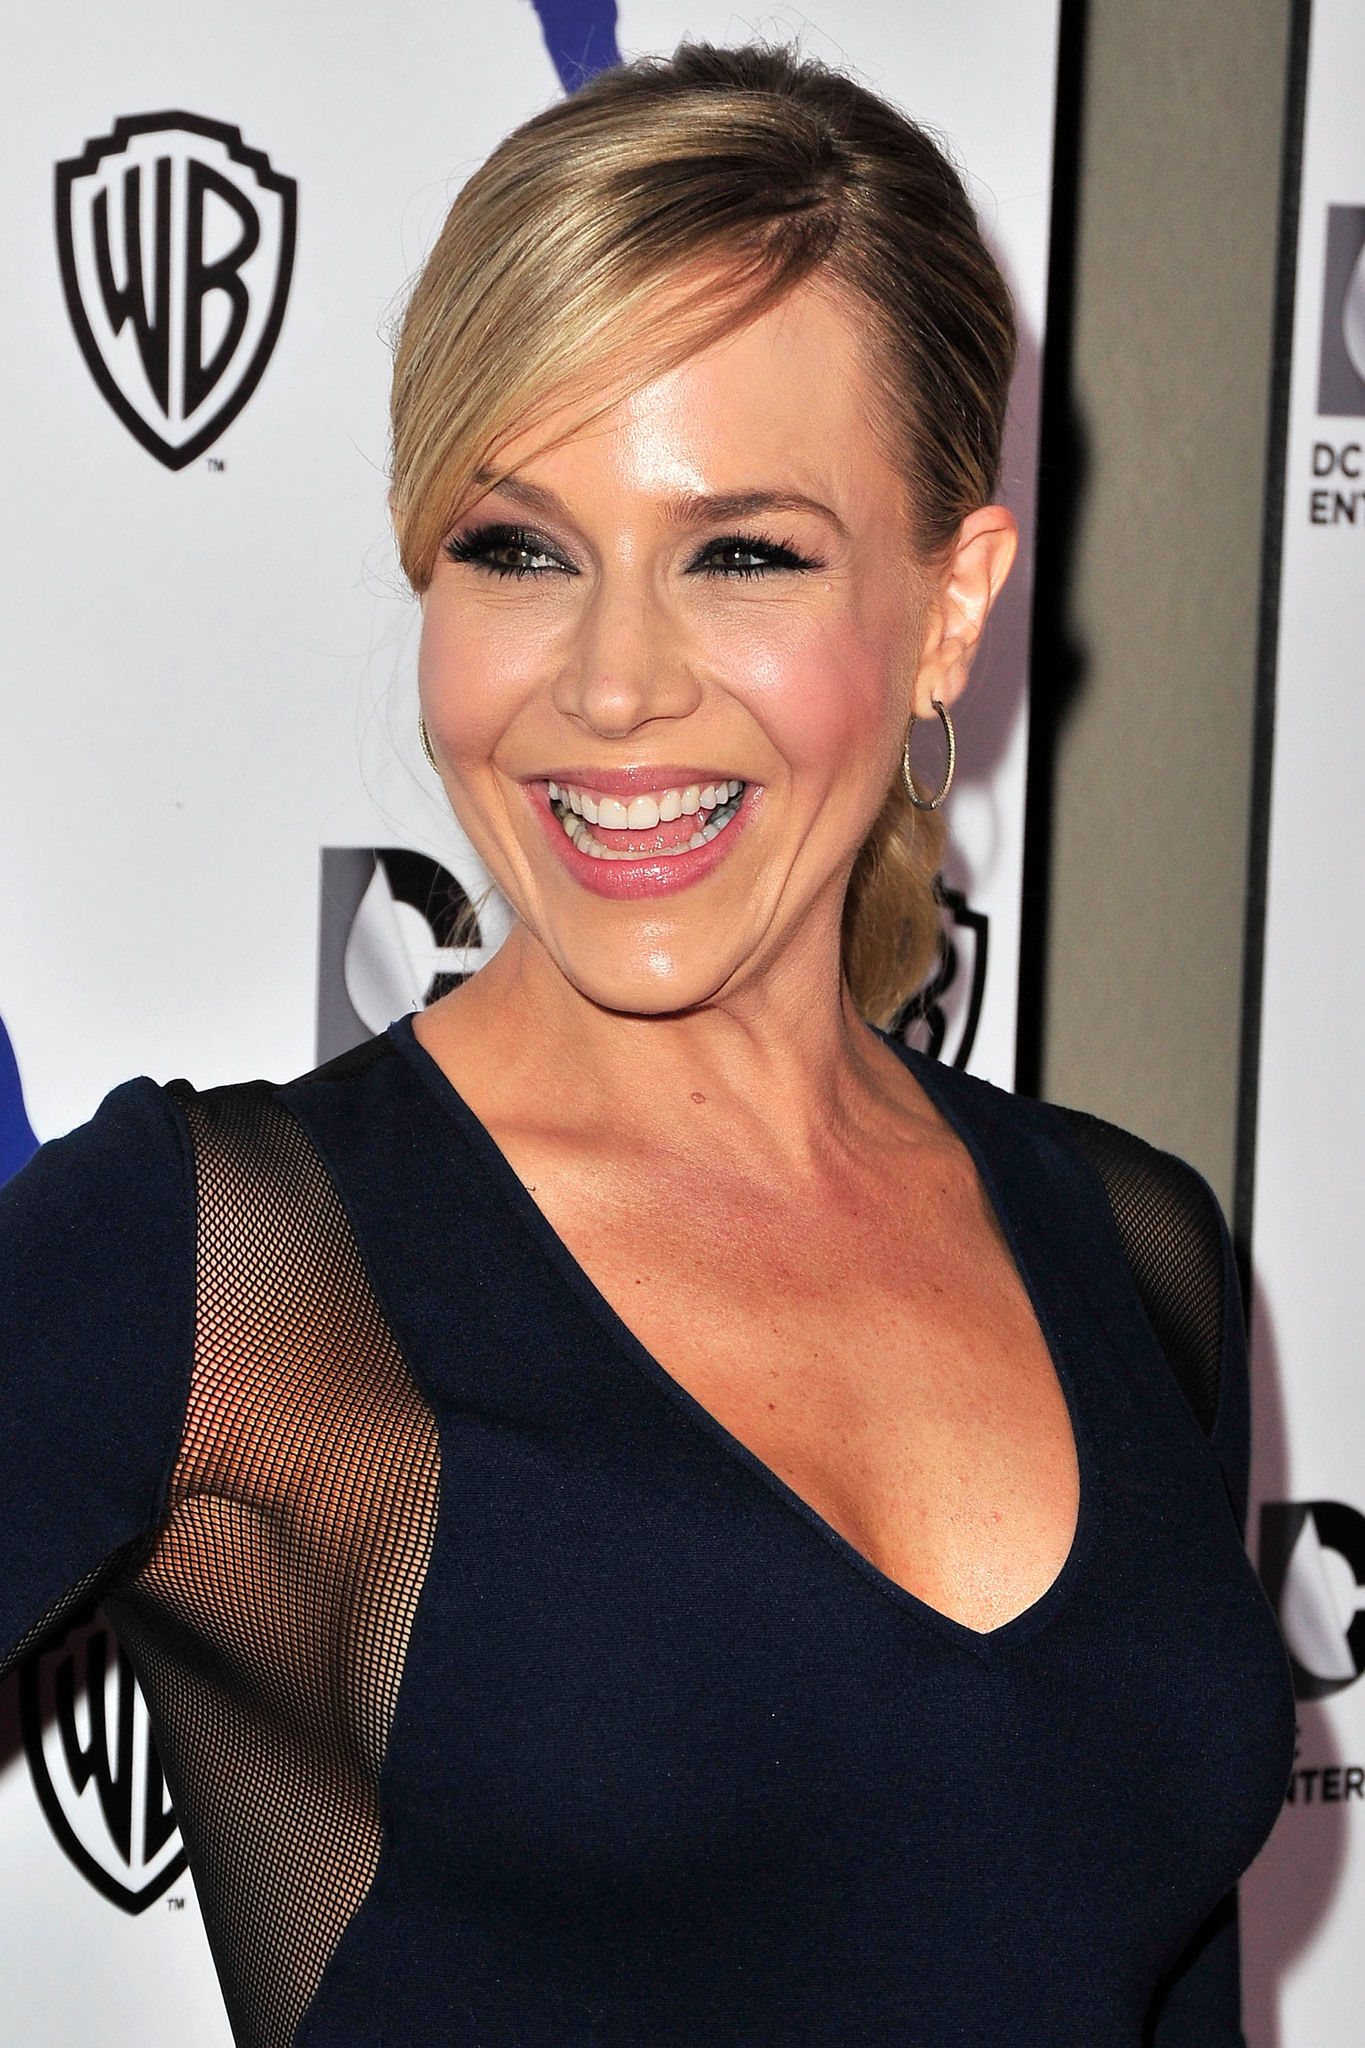 Julie Benz at an event for Man of Steel (2013)